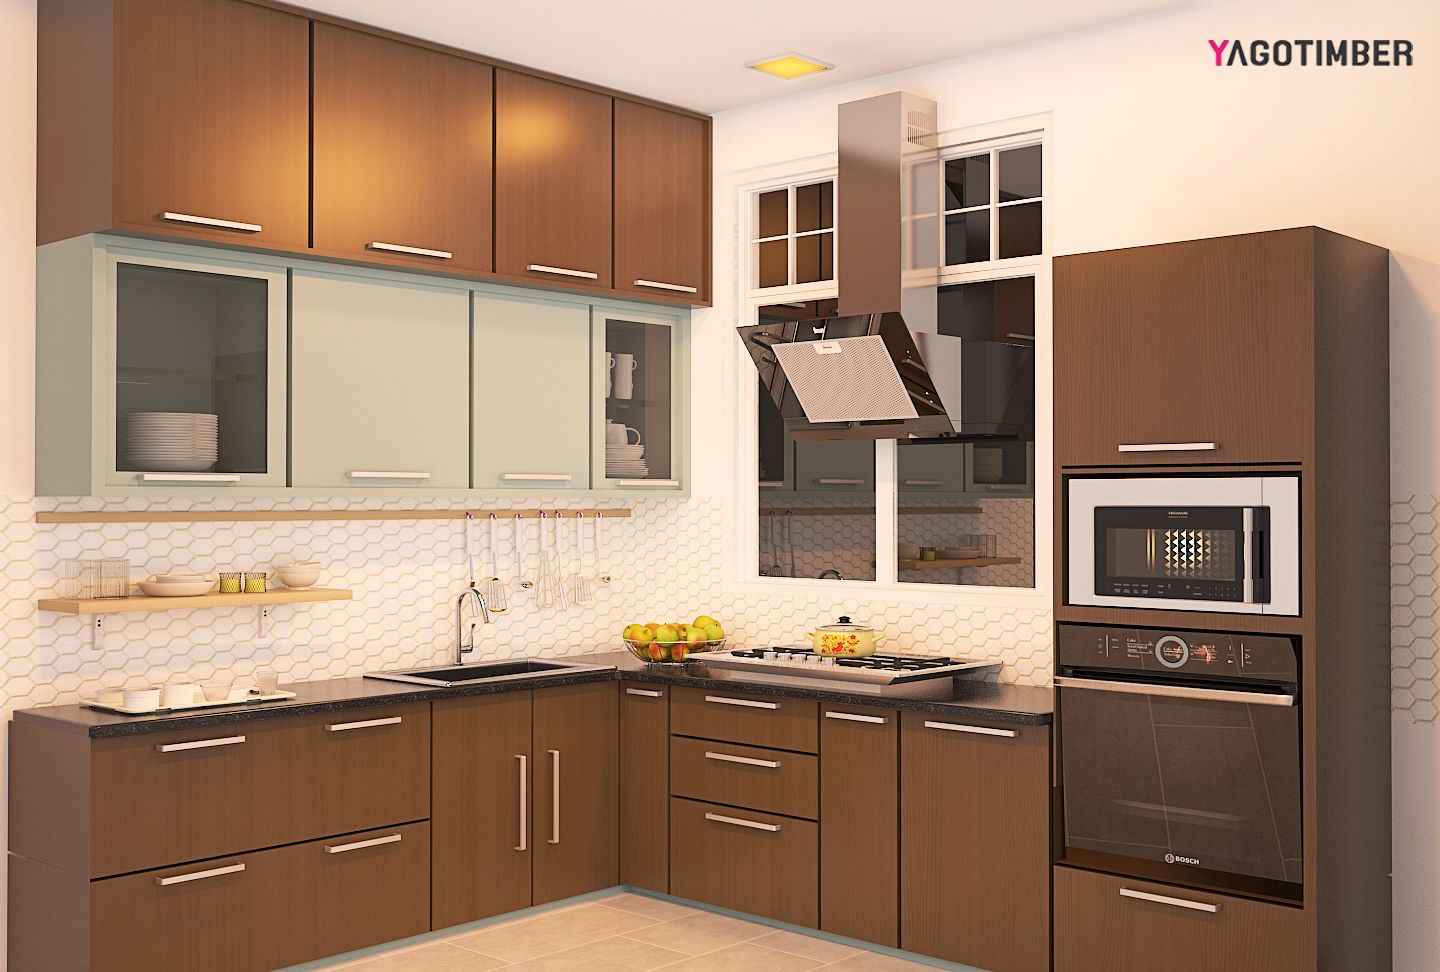 "Design Means Being Good, Not Just Looking Good."" #kitchen"